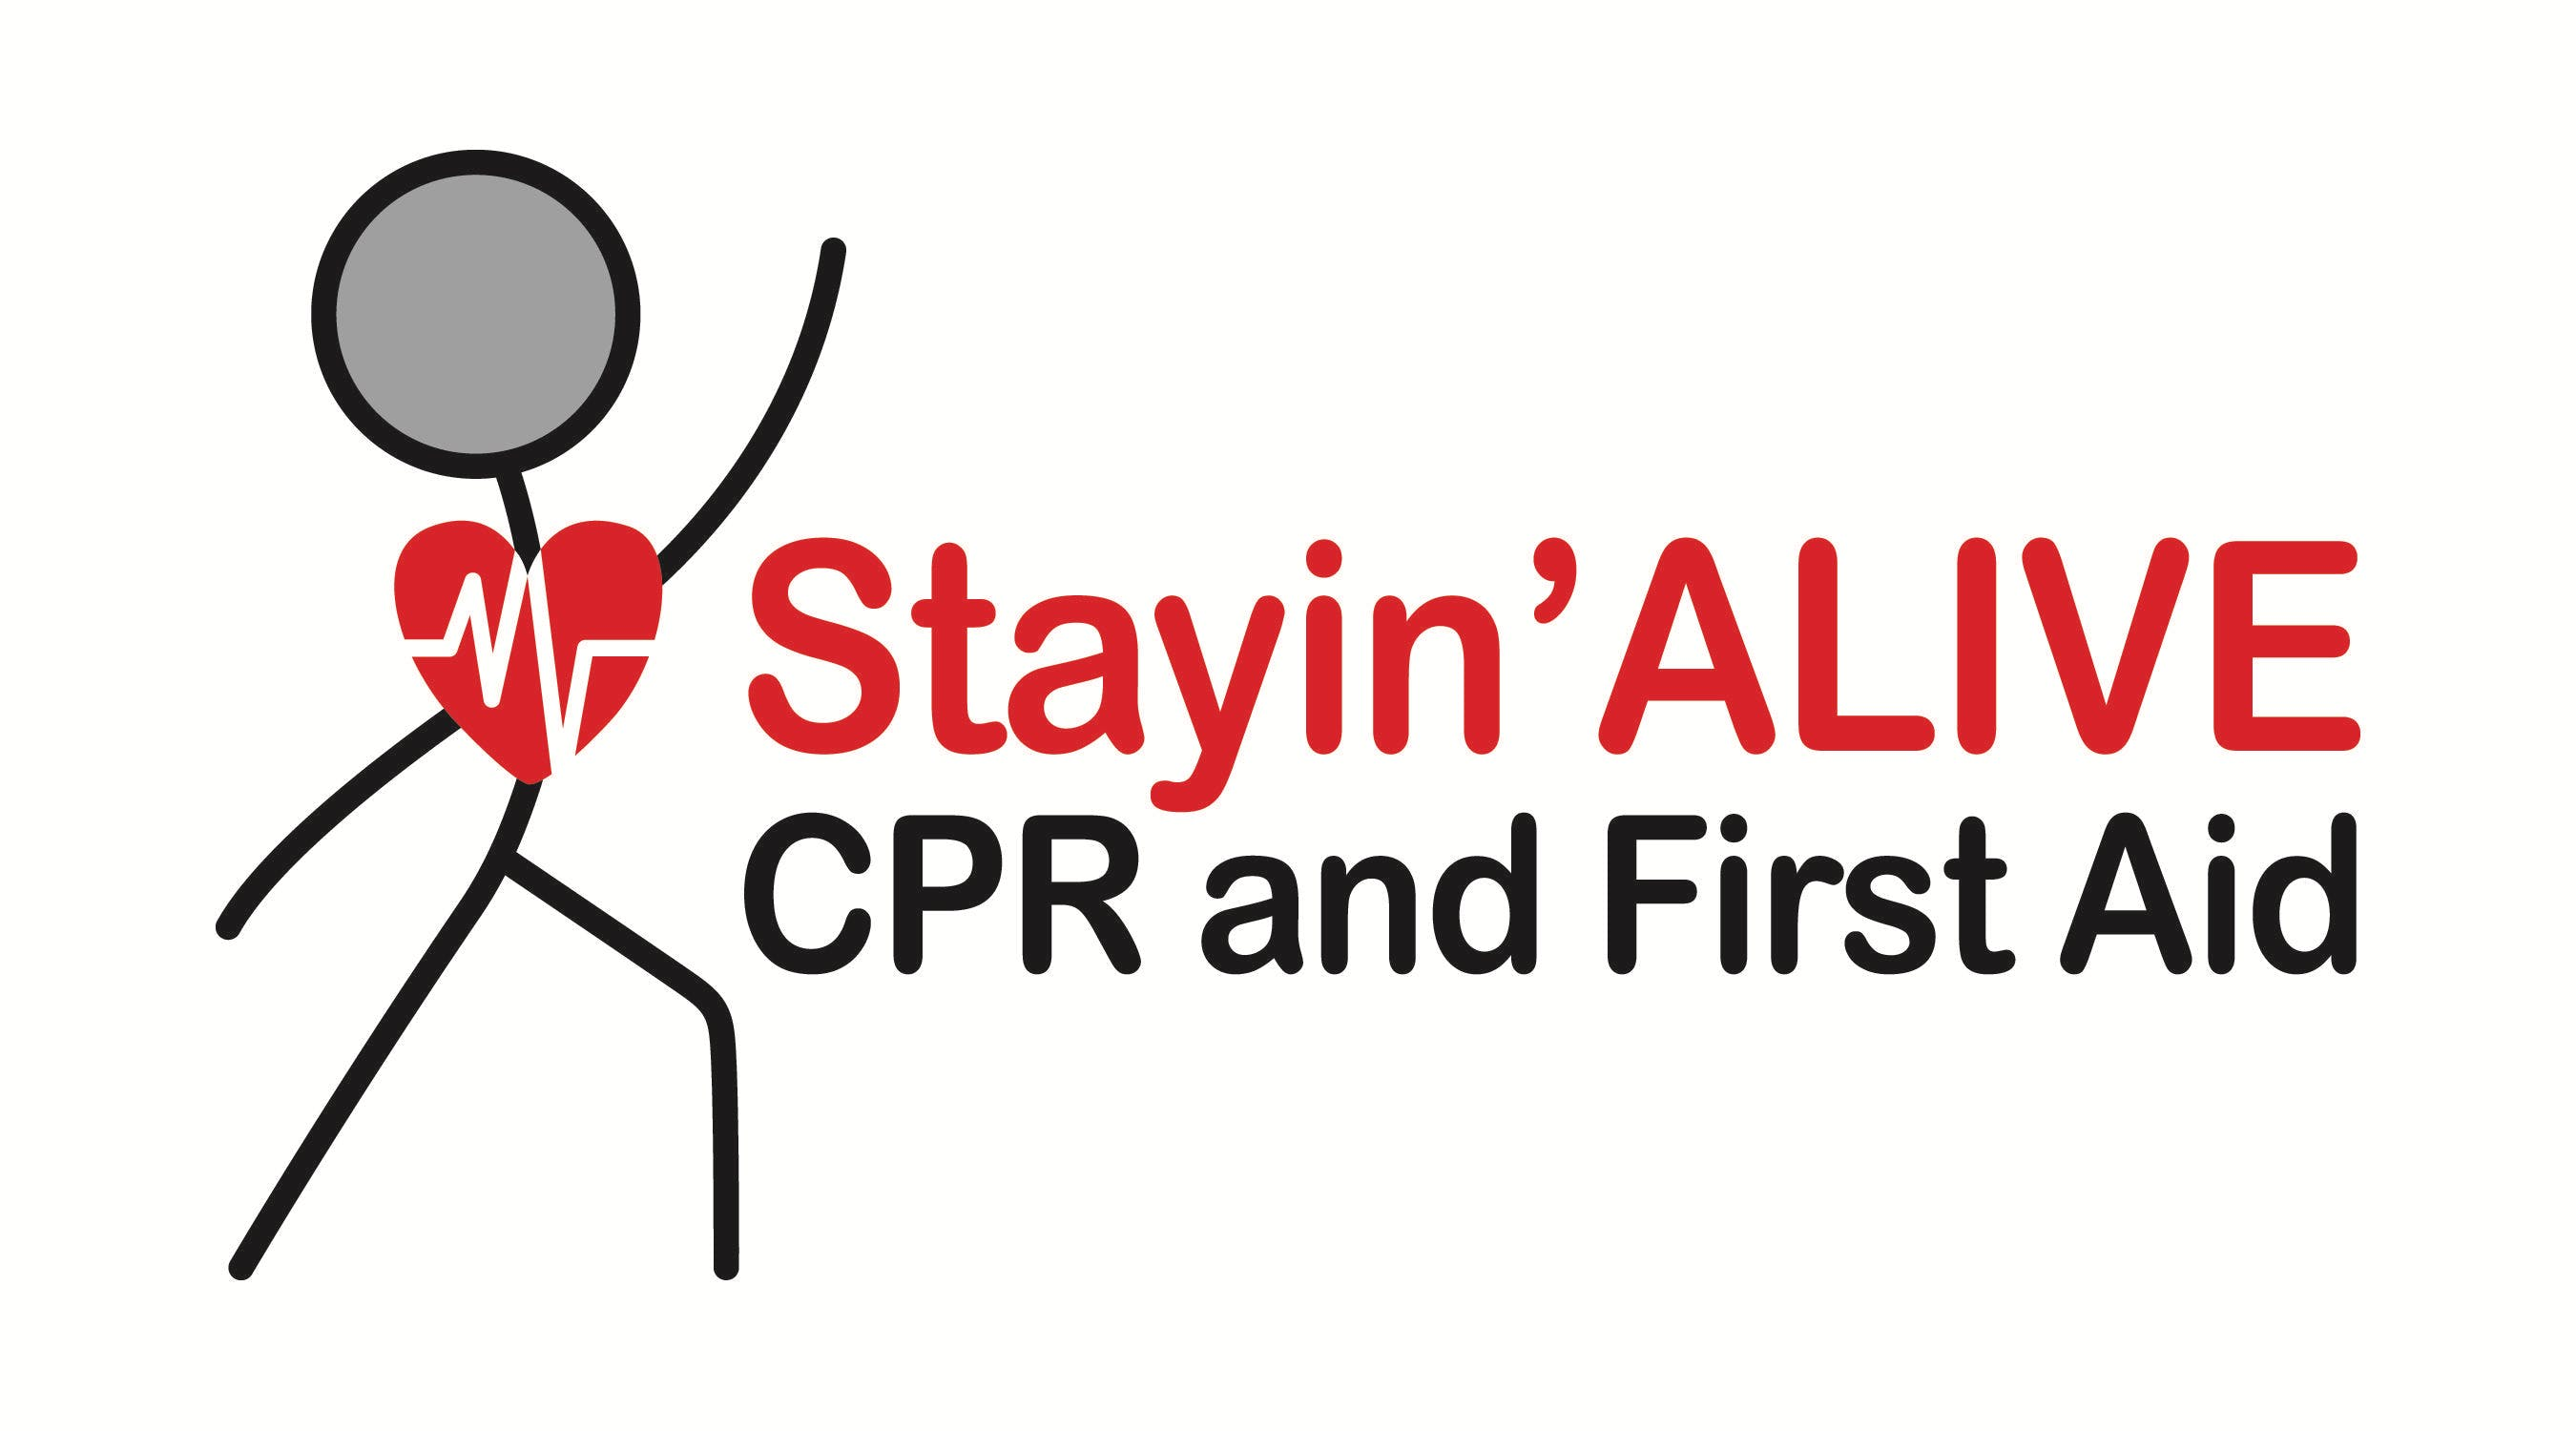 American Heart Association Cpraed Certification Course 13 Oct 2018